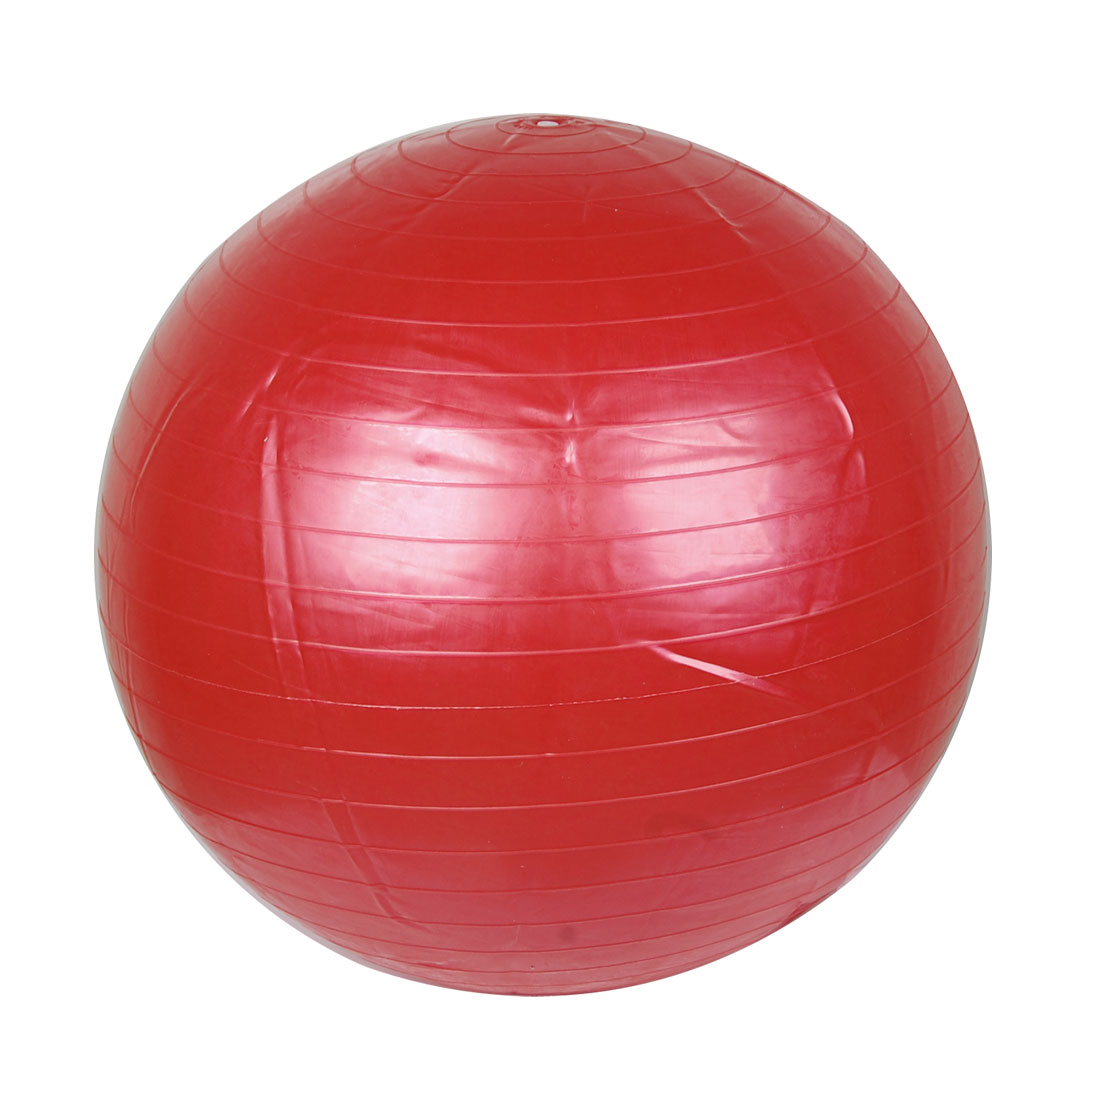 Red Rubber Inflatable Massage Yoga Gymnastics Body Exercise Fitness Ball